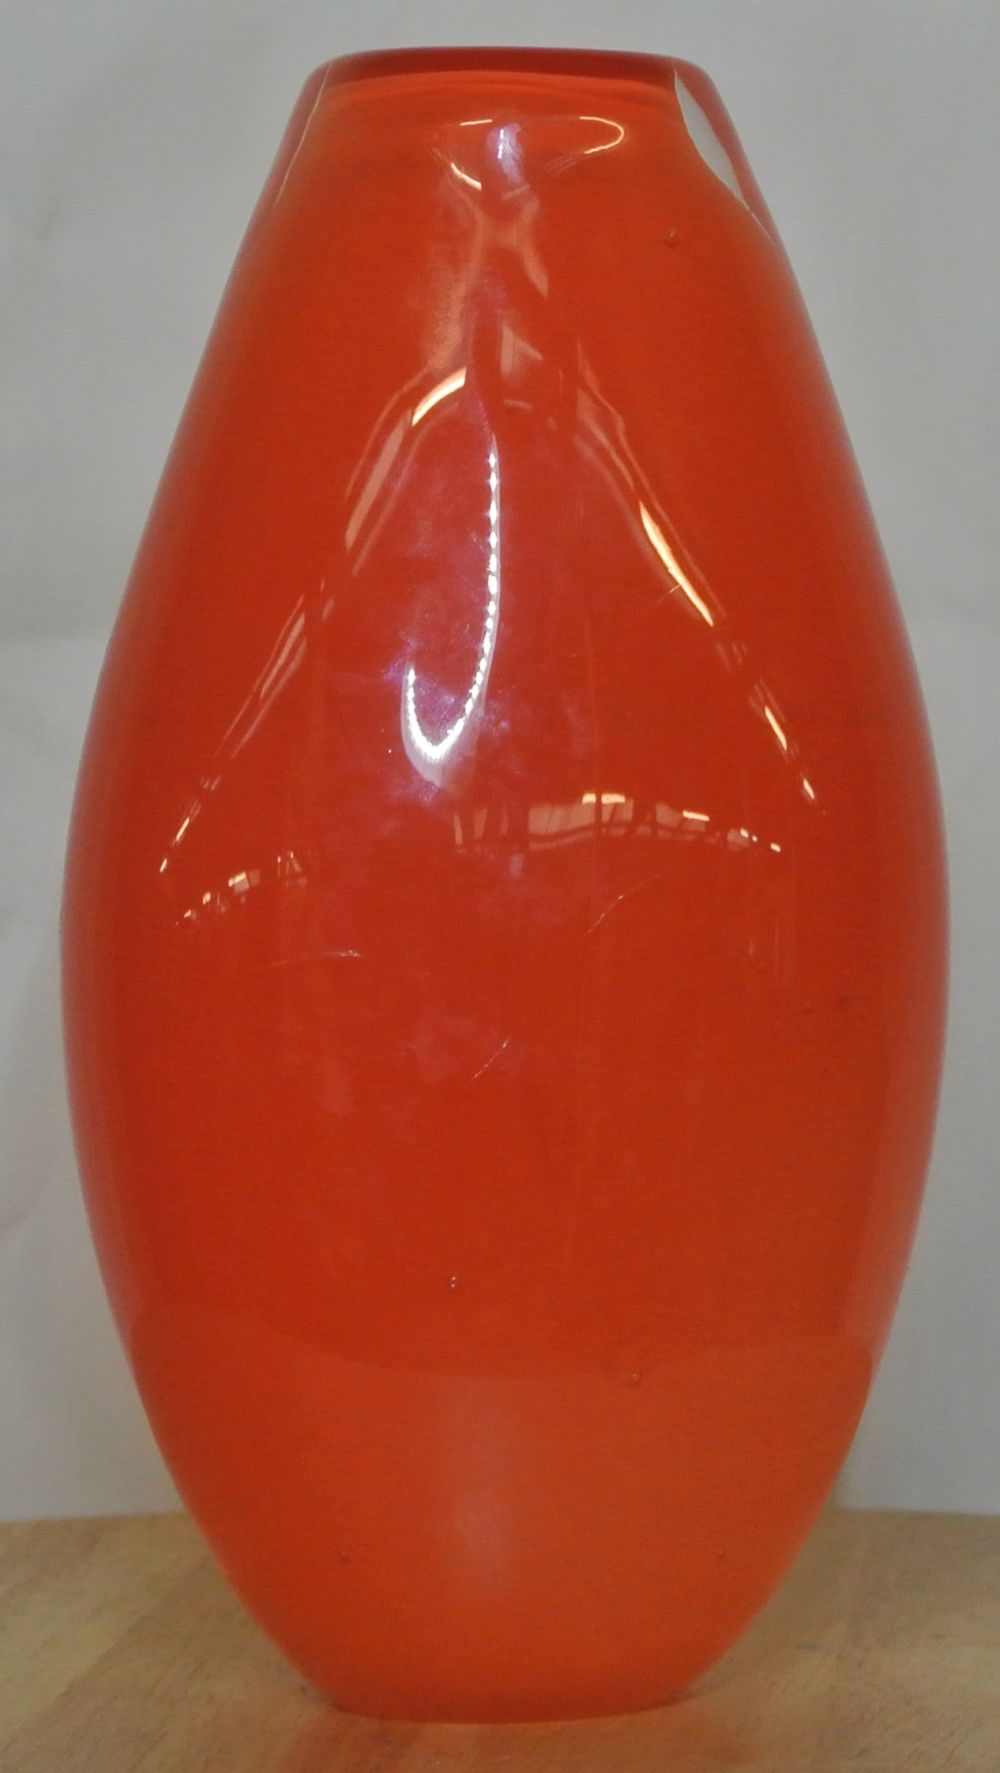 Lot 64: A decorative orange glass vase with applied painted design